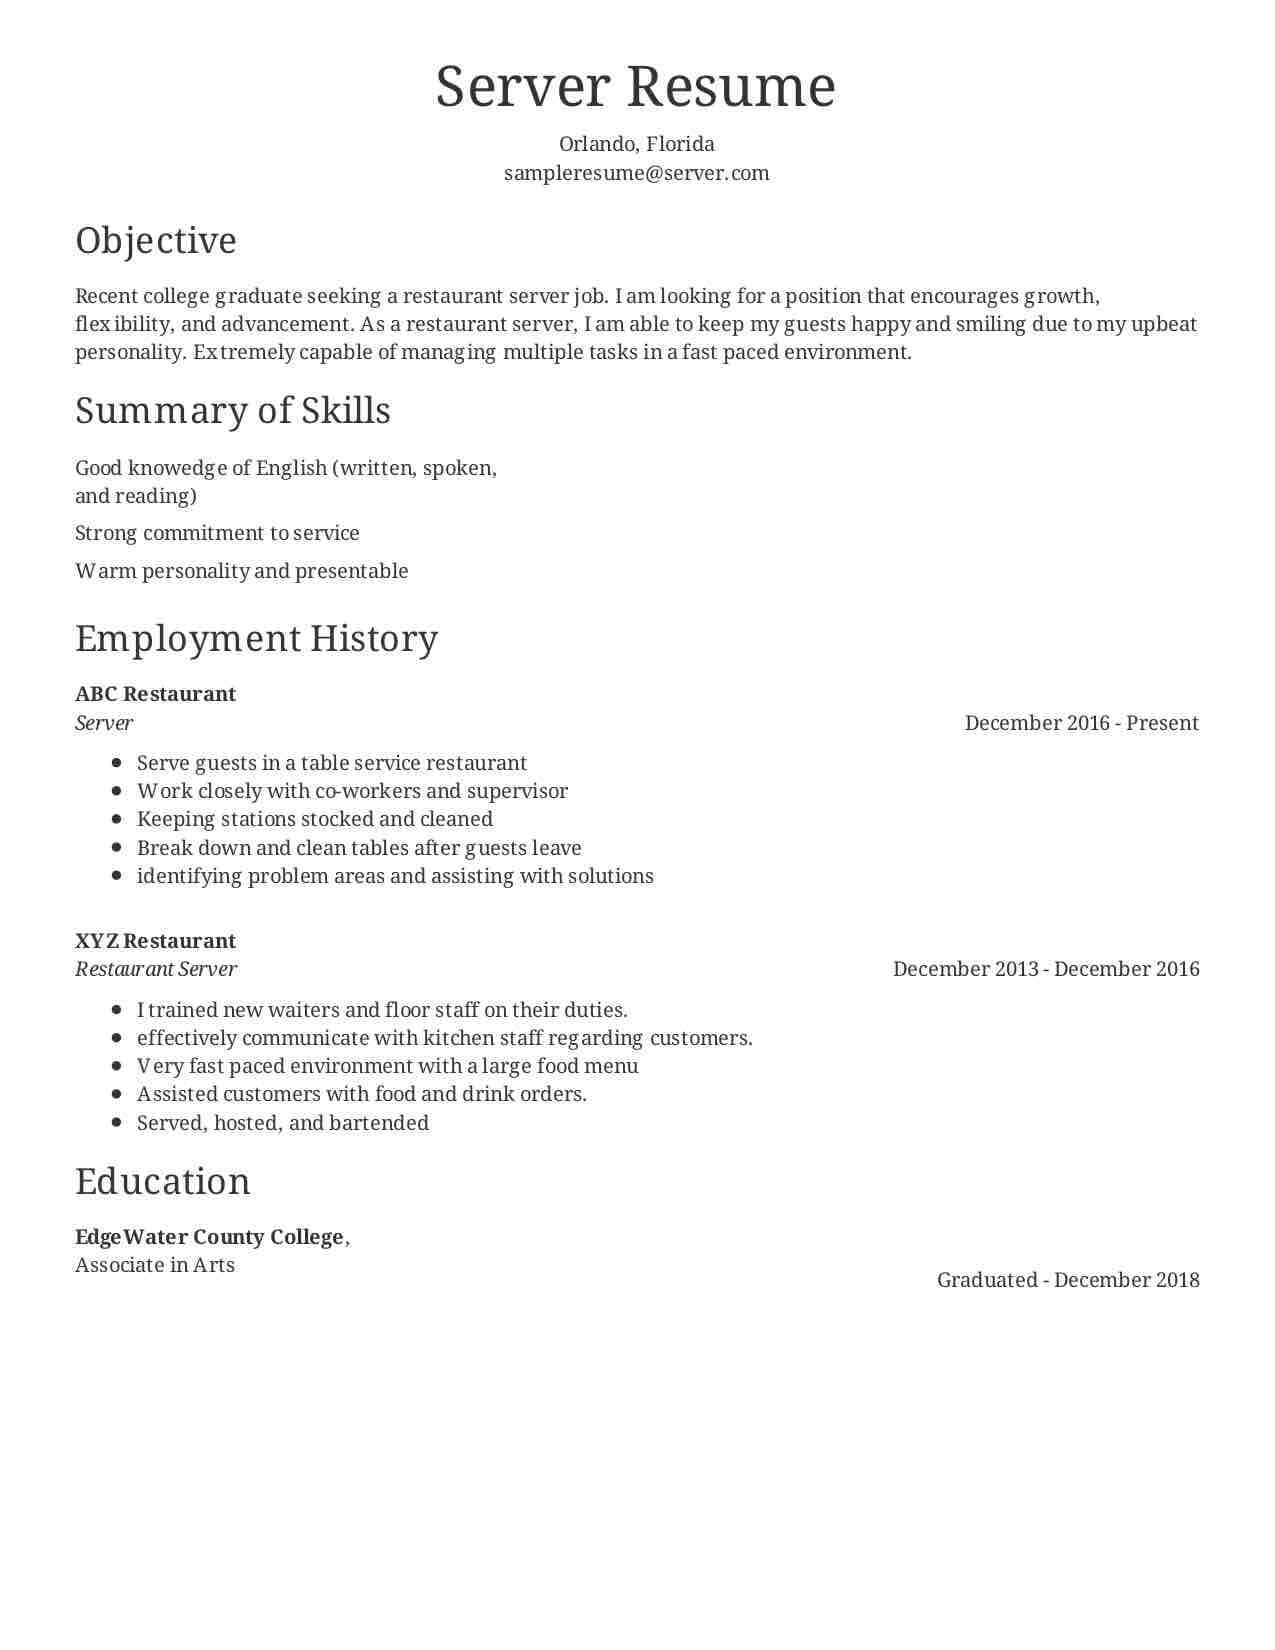 Weak resume objective resume cover letter examples for medical assistant